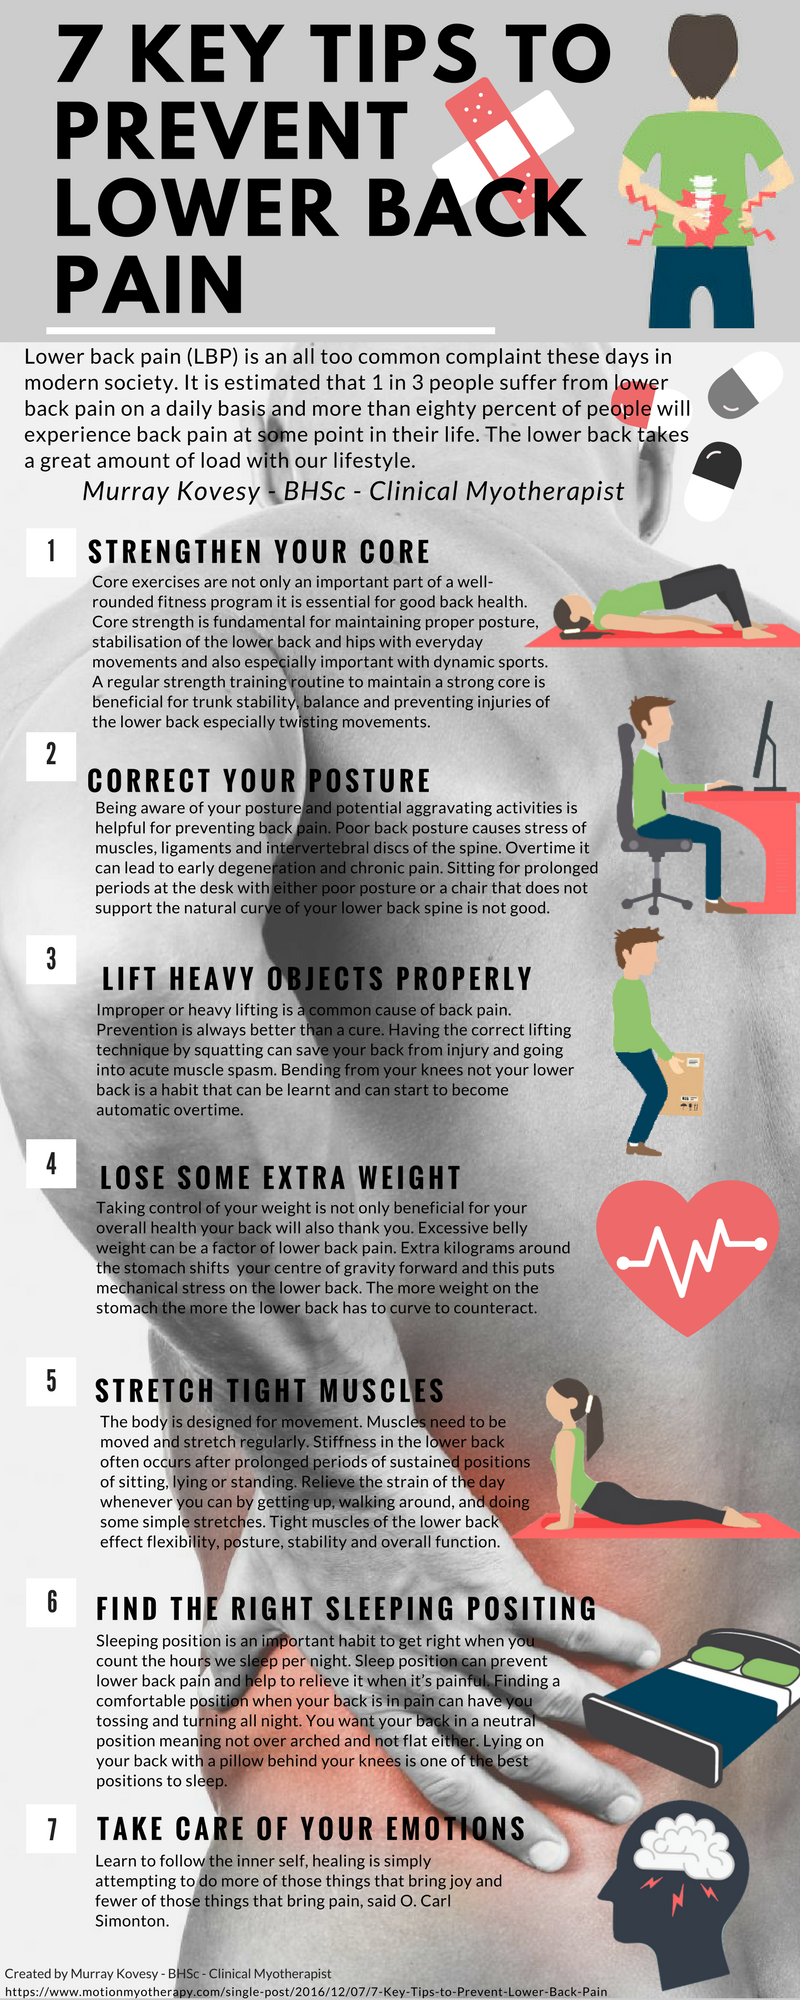 7 Key Tips to Prevent Lower Back Pain